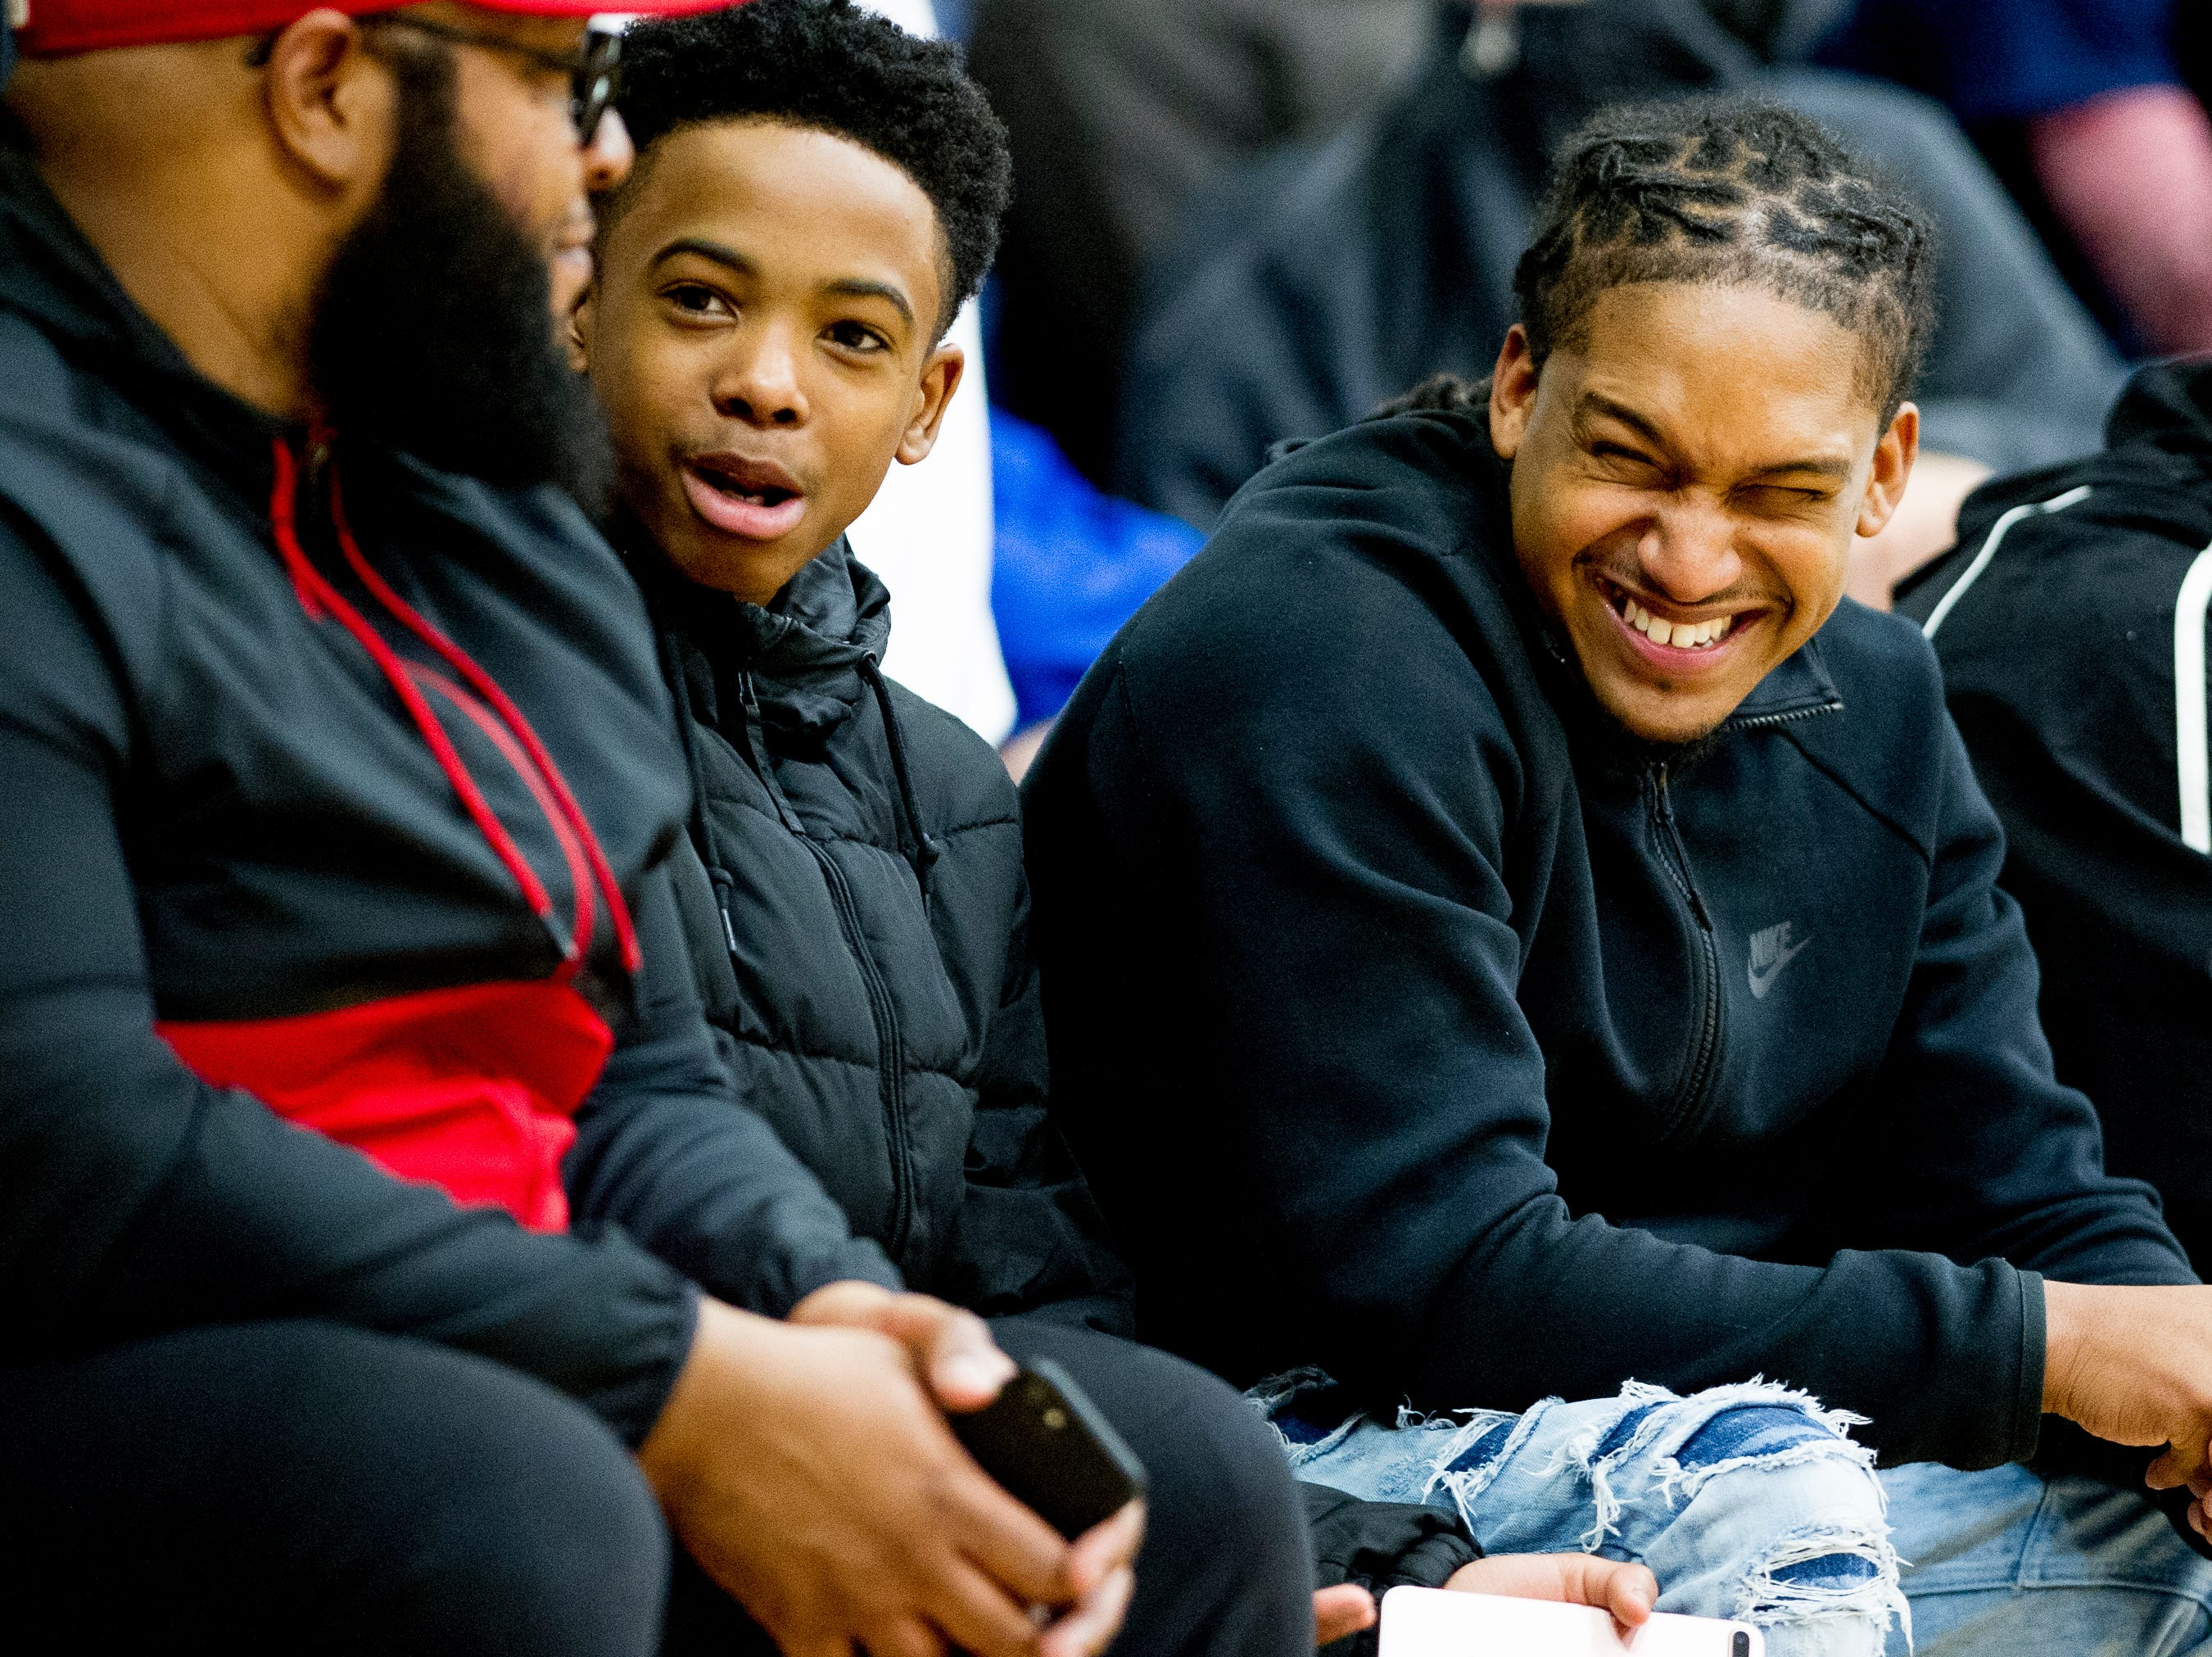 Fans share a laugh in the bleachers during a game between West and Webb at West High School in Knoxville, Tennessee on Friday, January 4, 2019.